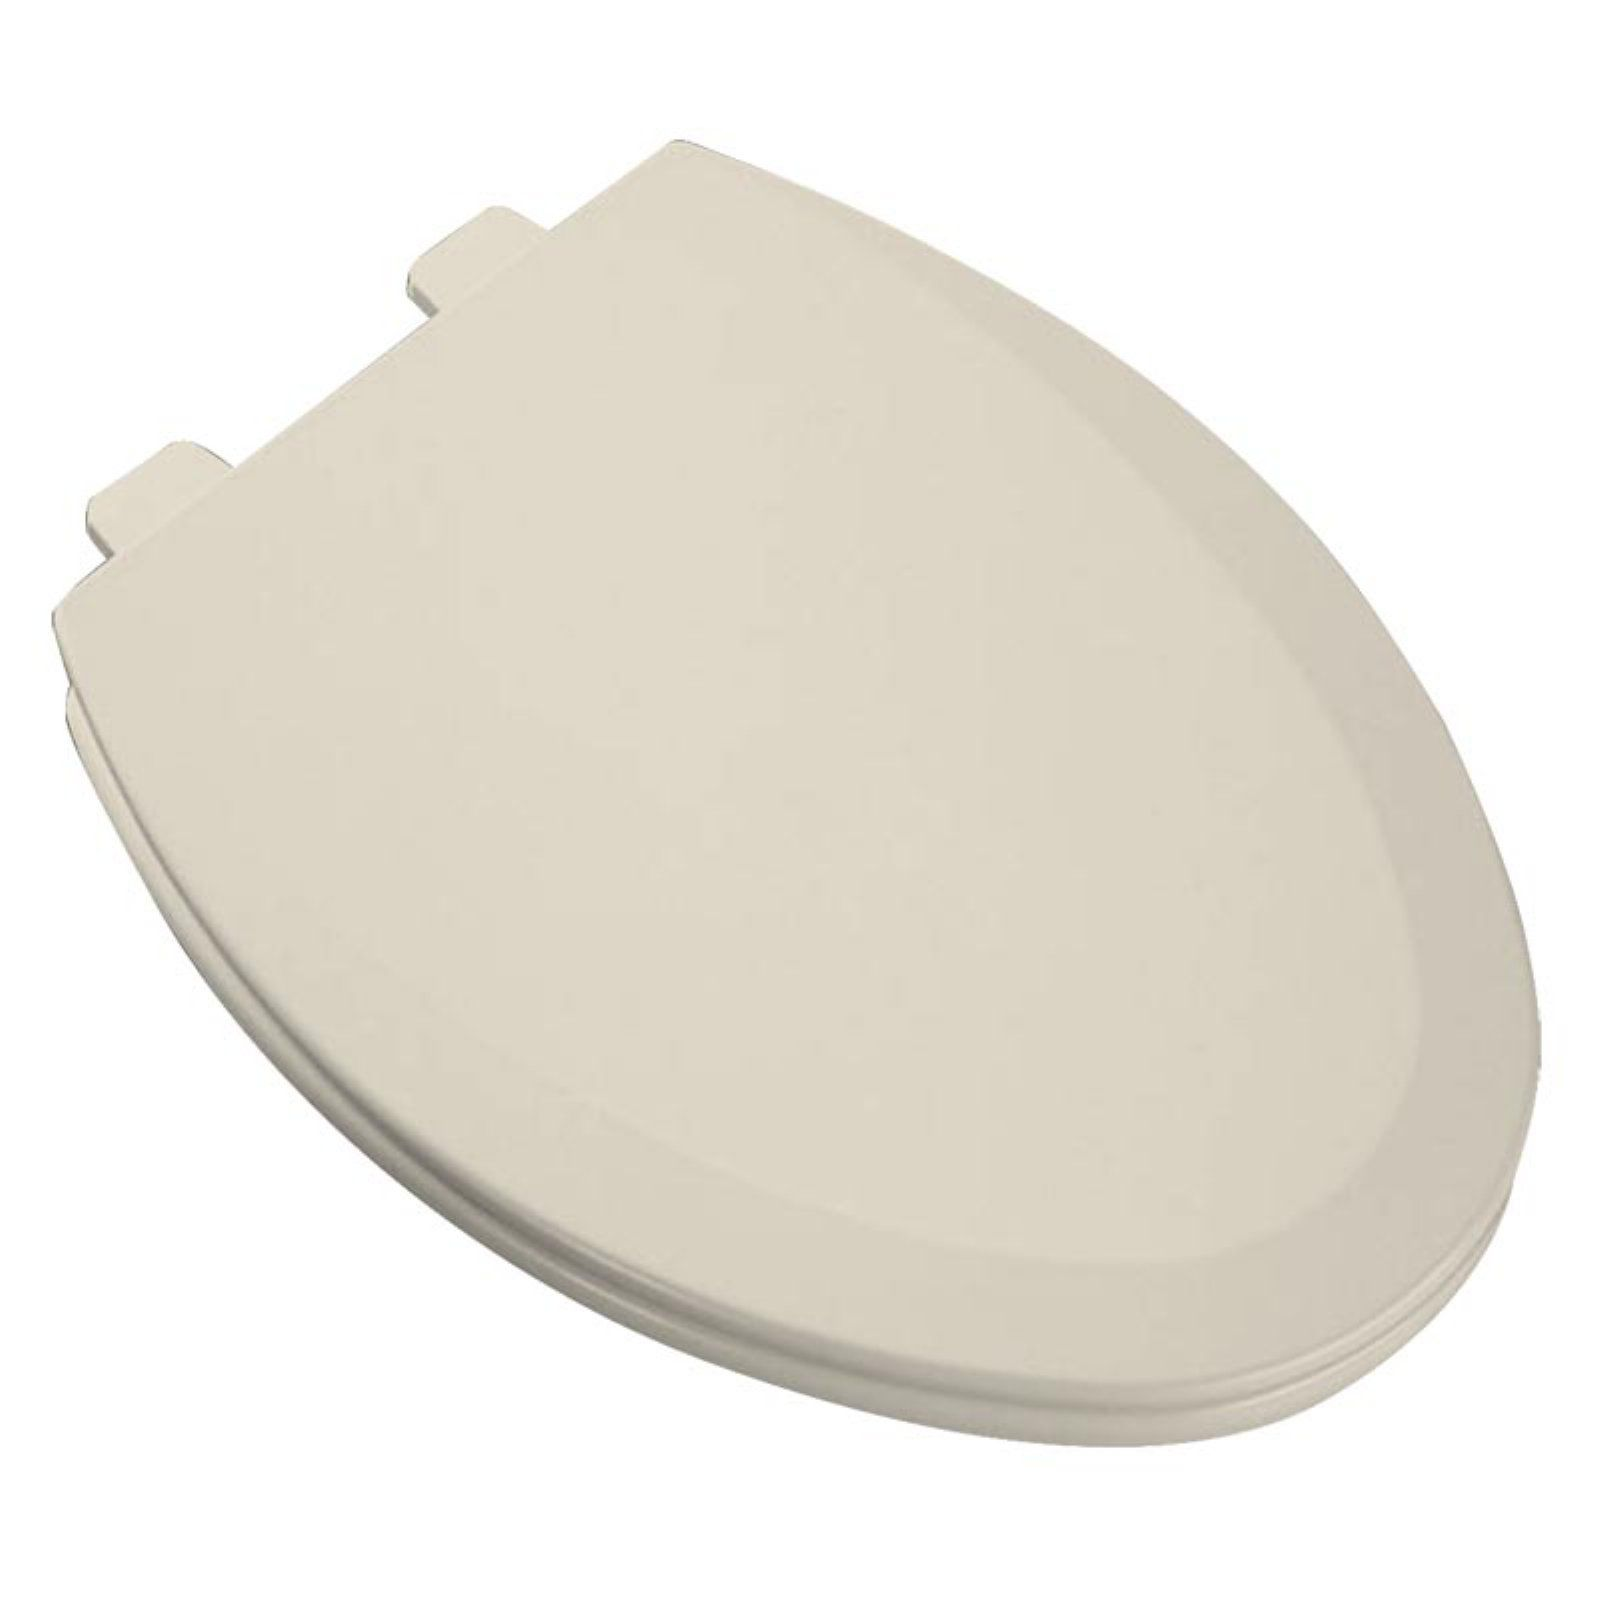 Enjoyable Bemis 1500Ec Elongated Wood Toilet Seat Almond Products In Short Links Chair Design For Home Short Linksinfo